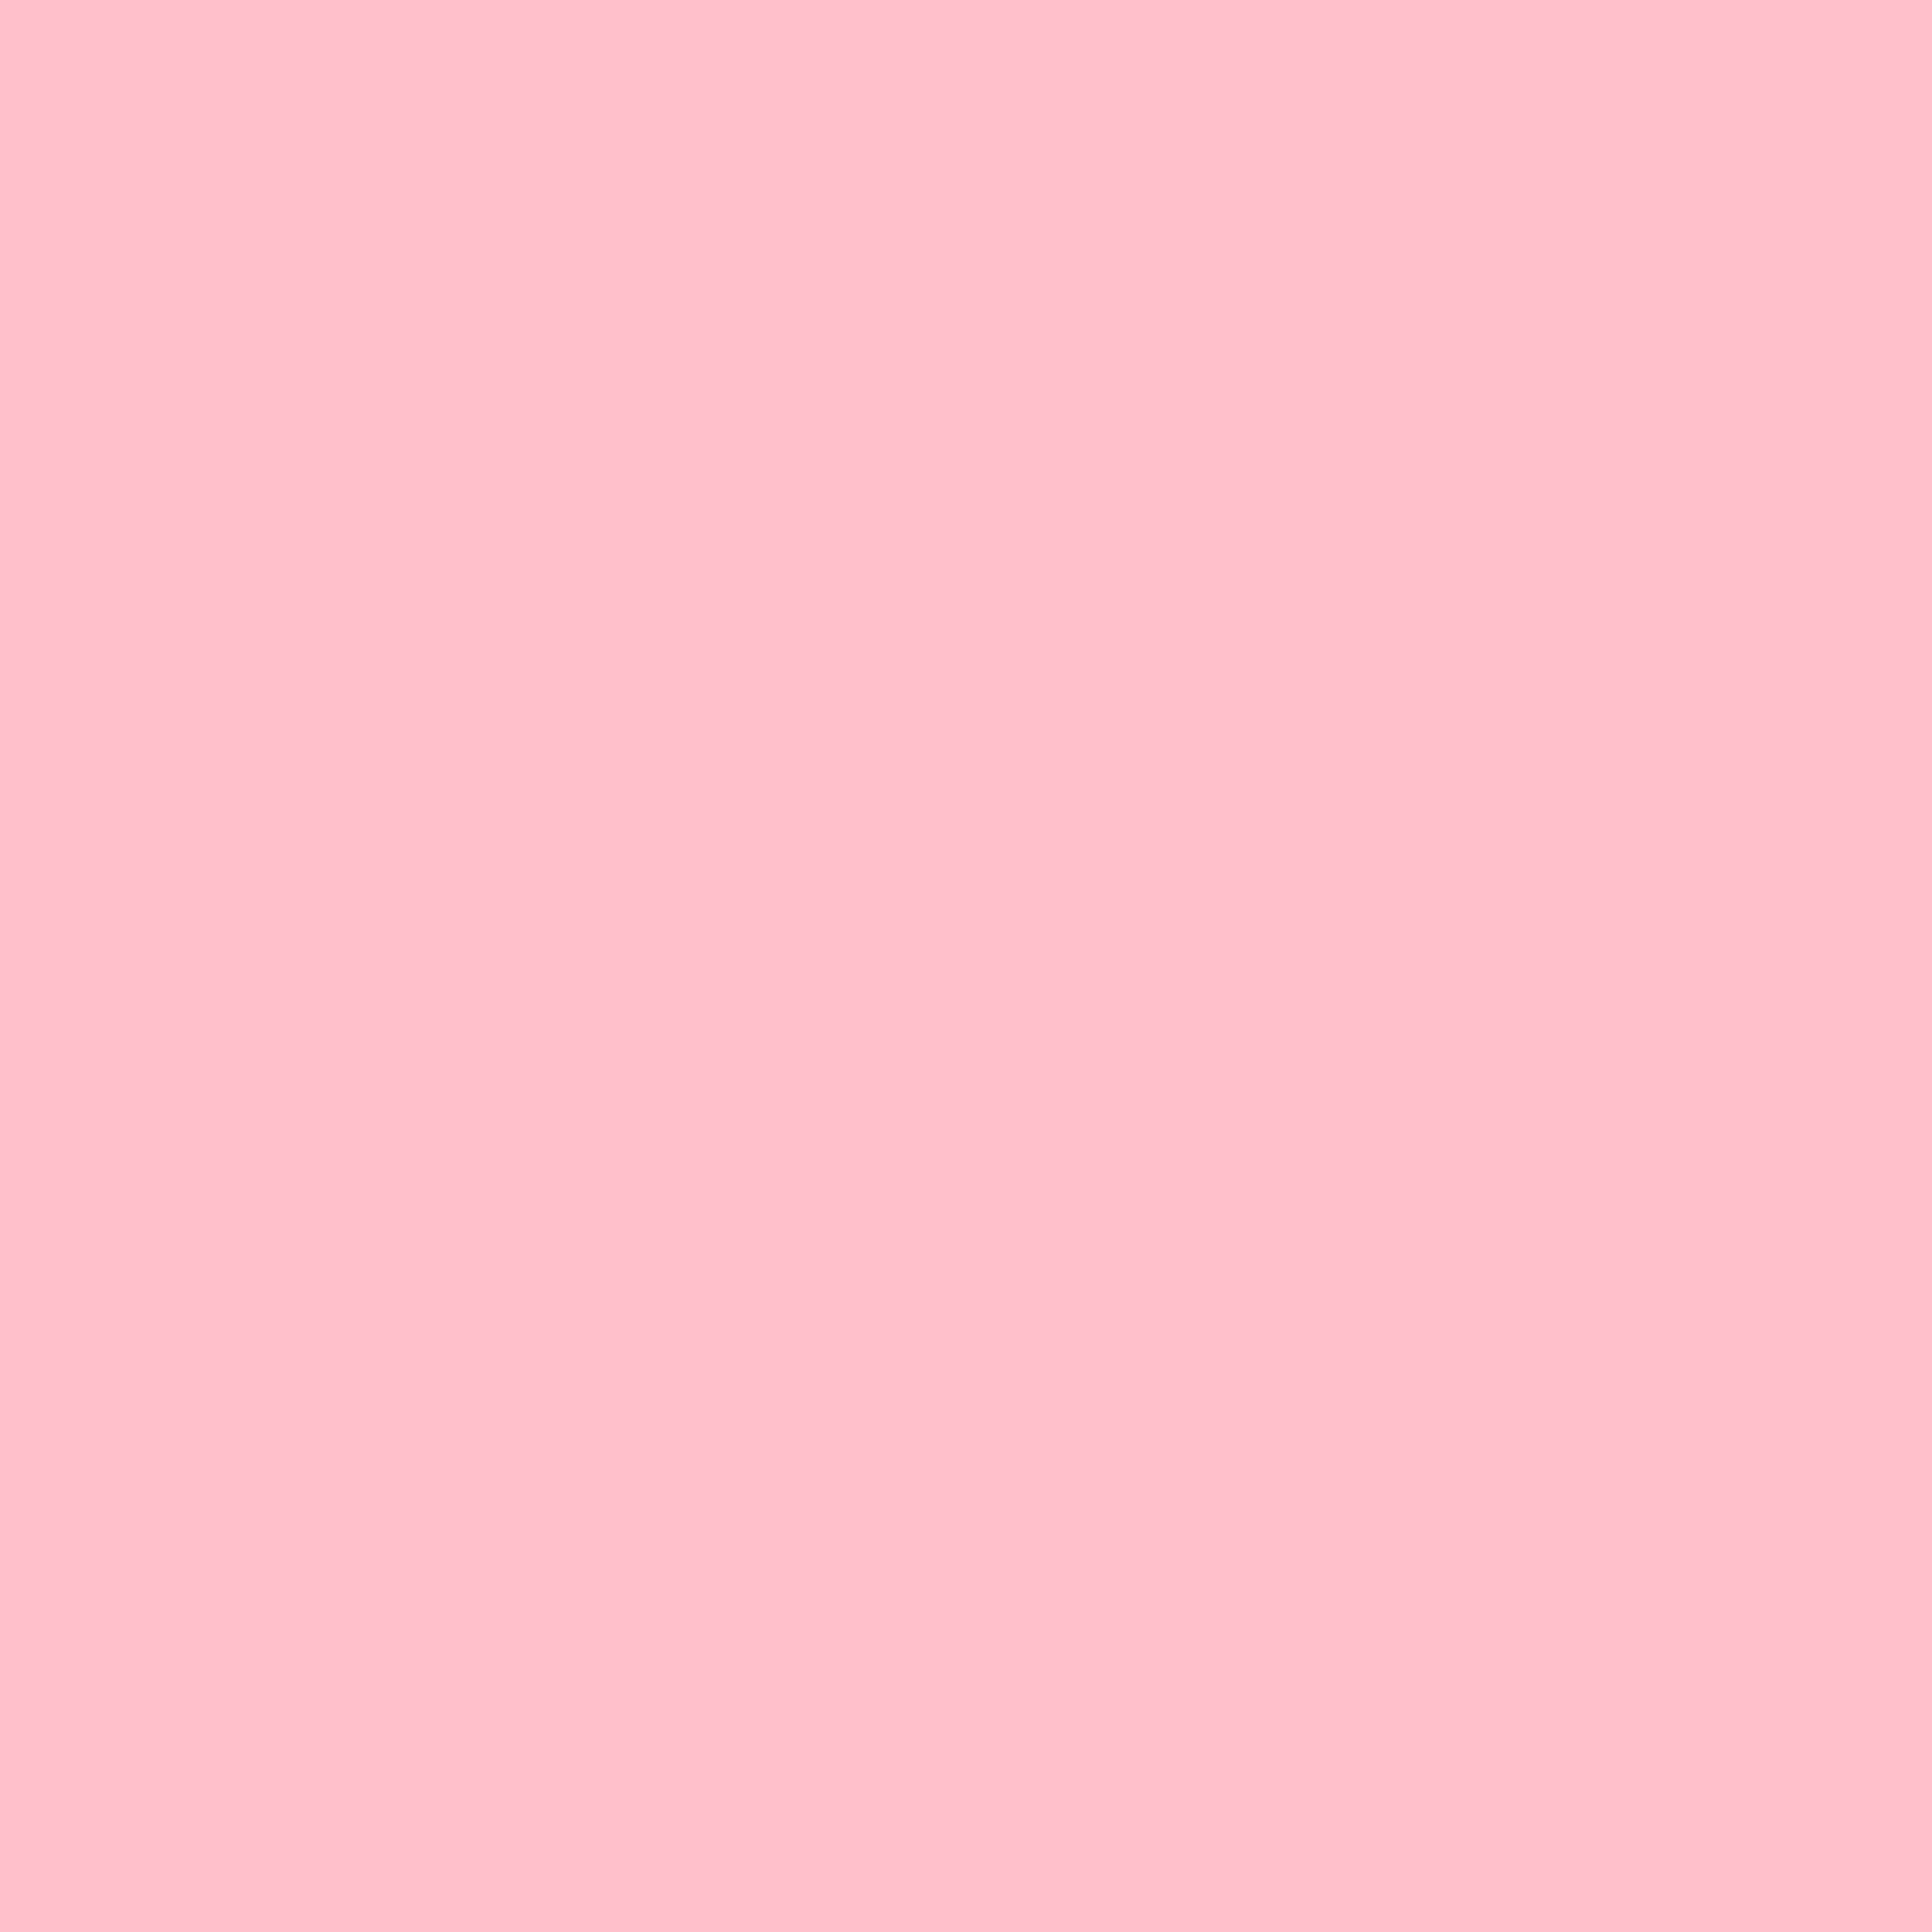 3600x3600 Pink Solid Color Background